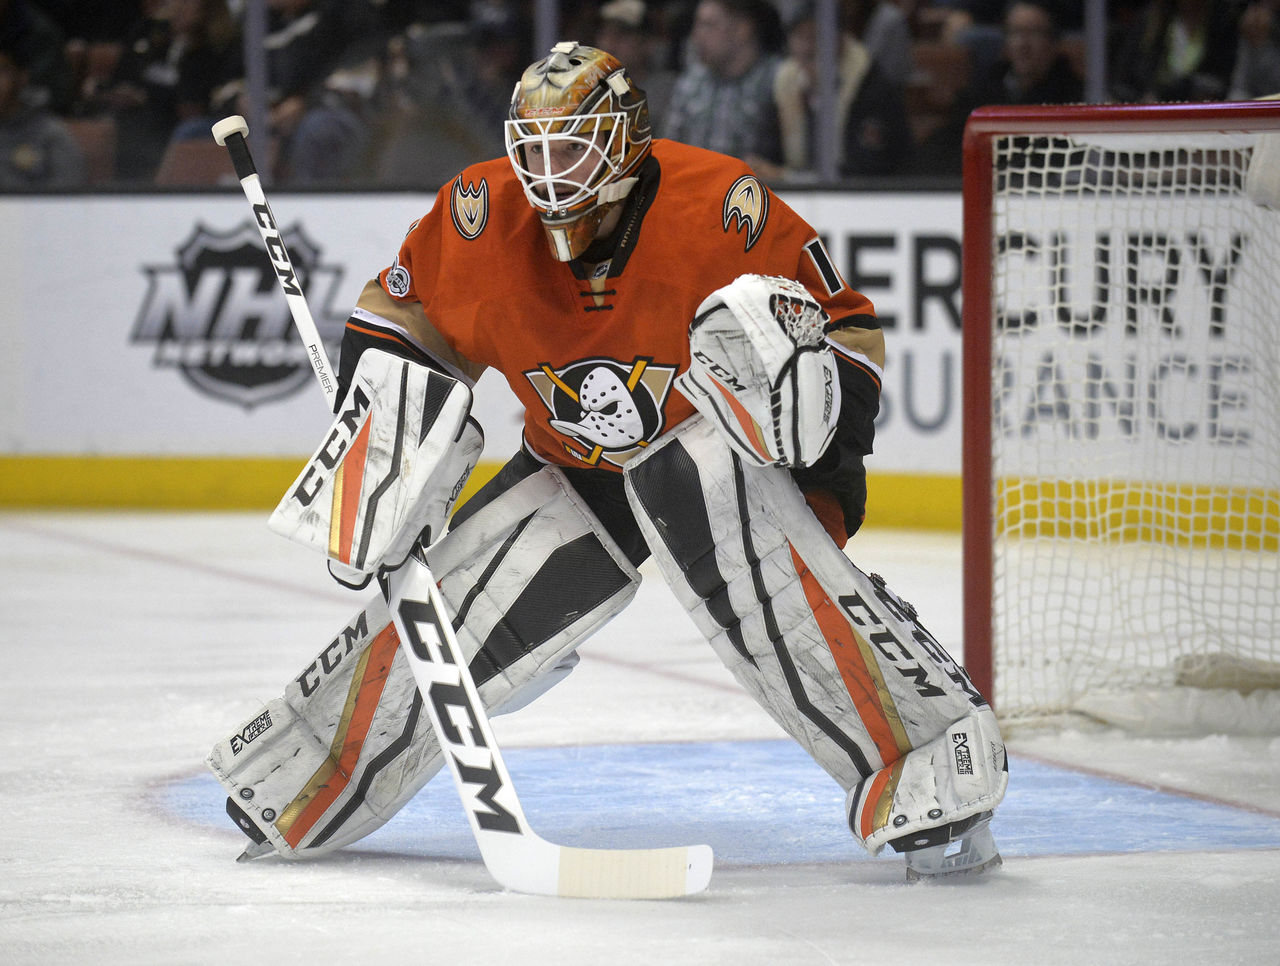 Cropped 2017 03 18t025921z 280954271 nocid rtrmadp 3 nhl buffalo sabres at anaheim ducks